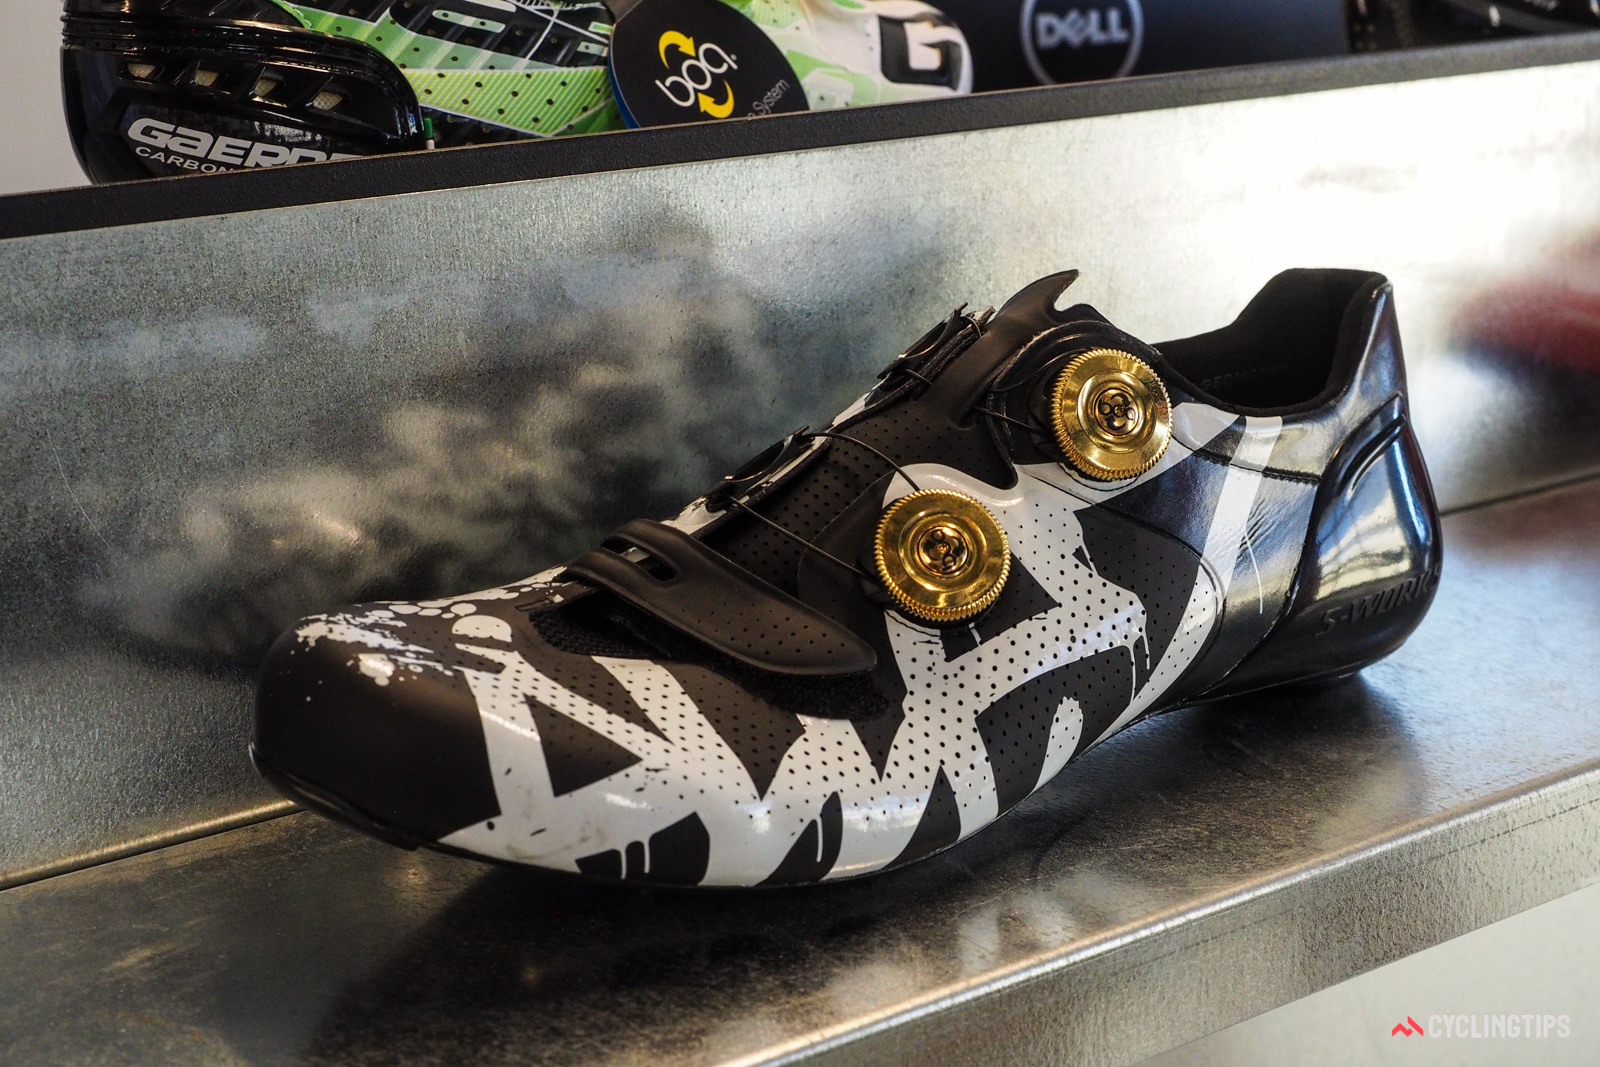 These Specialized S-Works shoes were made for none other than current world champion Peter Sagan.